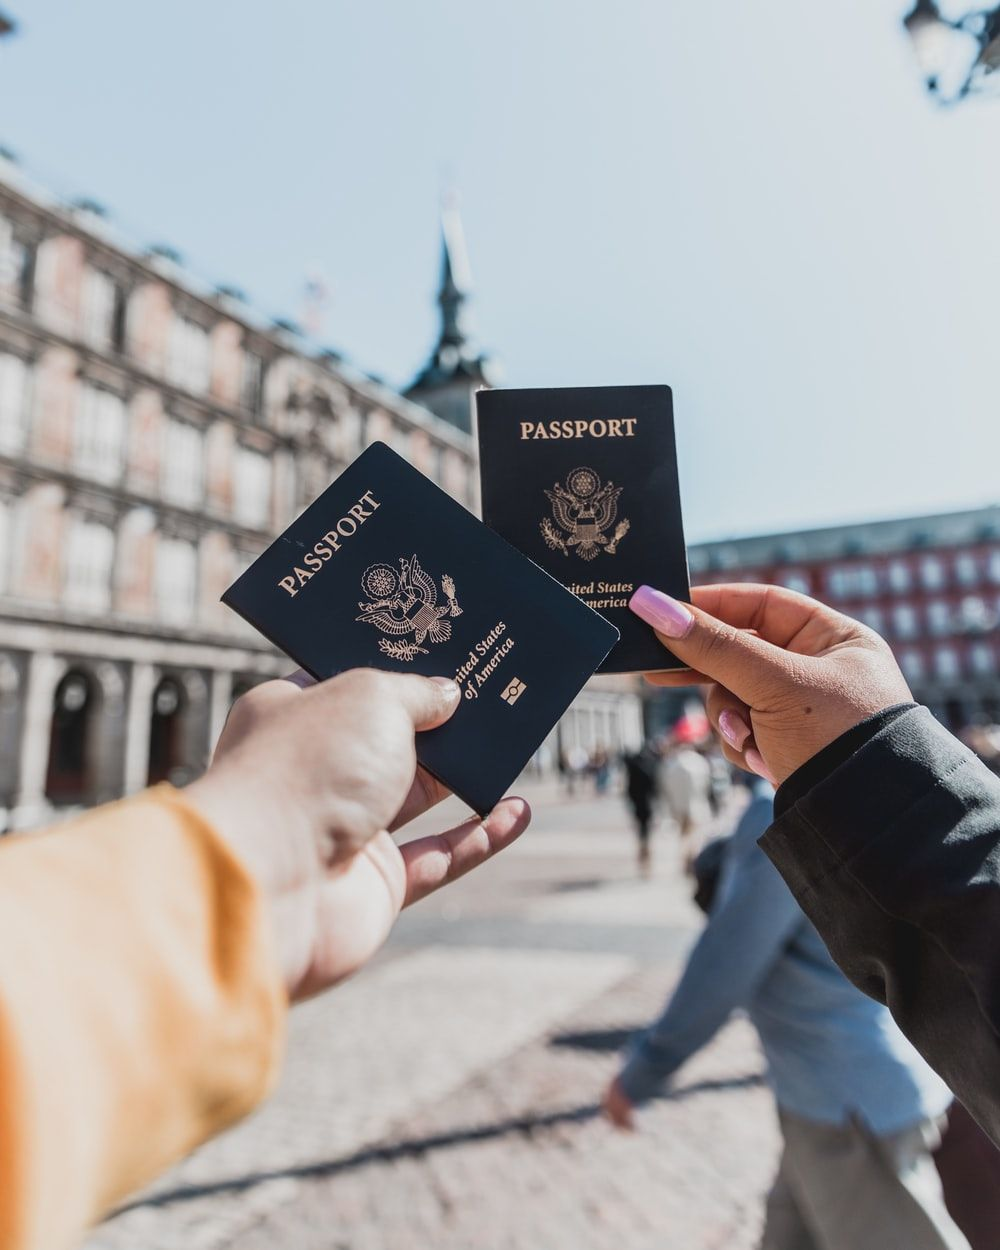 1000x1250 350+ Passport Pictures [HD]   Download Free Images on Unsplash